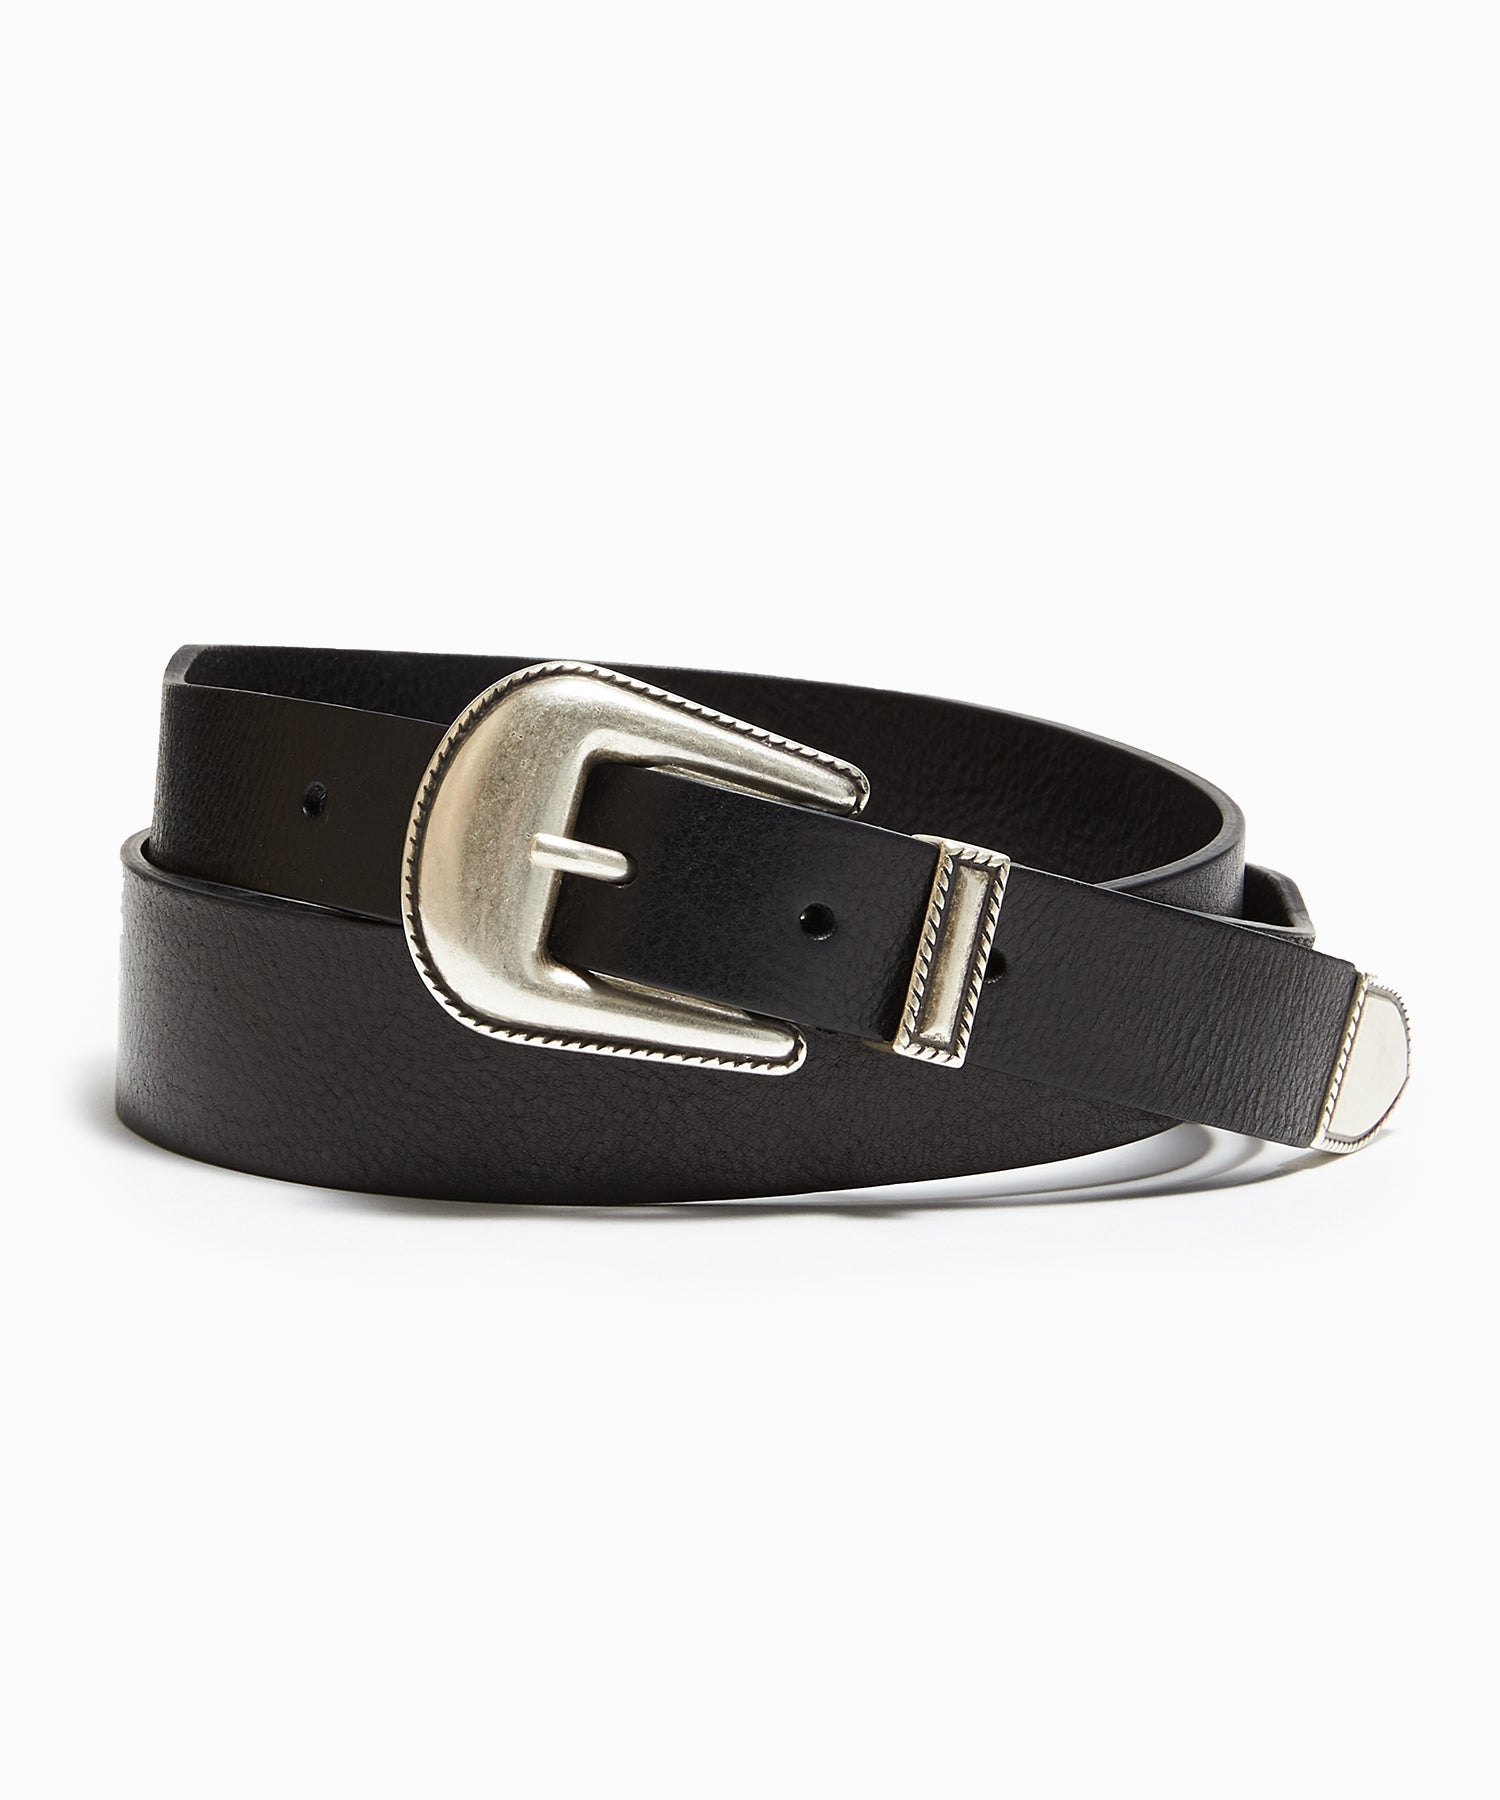 Anderson's Leather Western Belt in Black